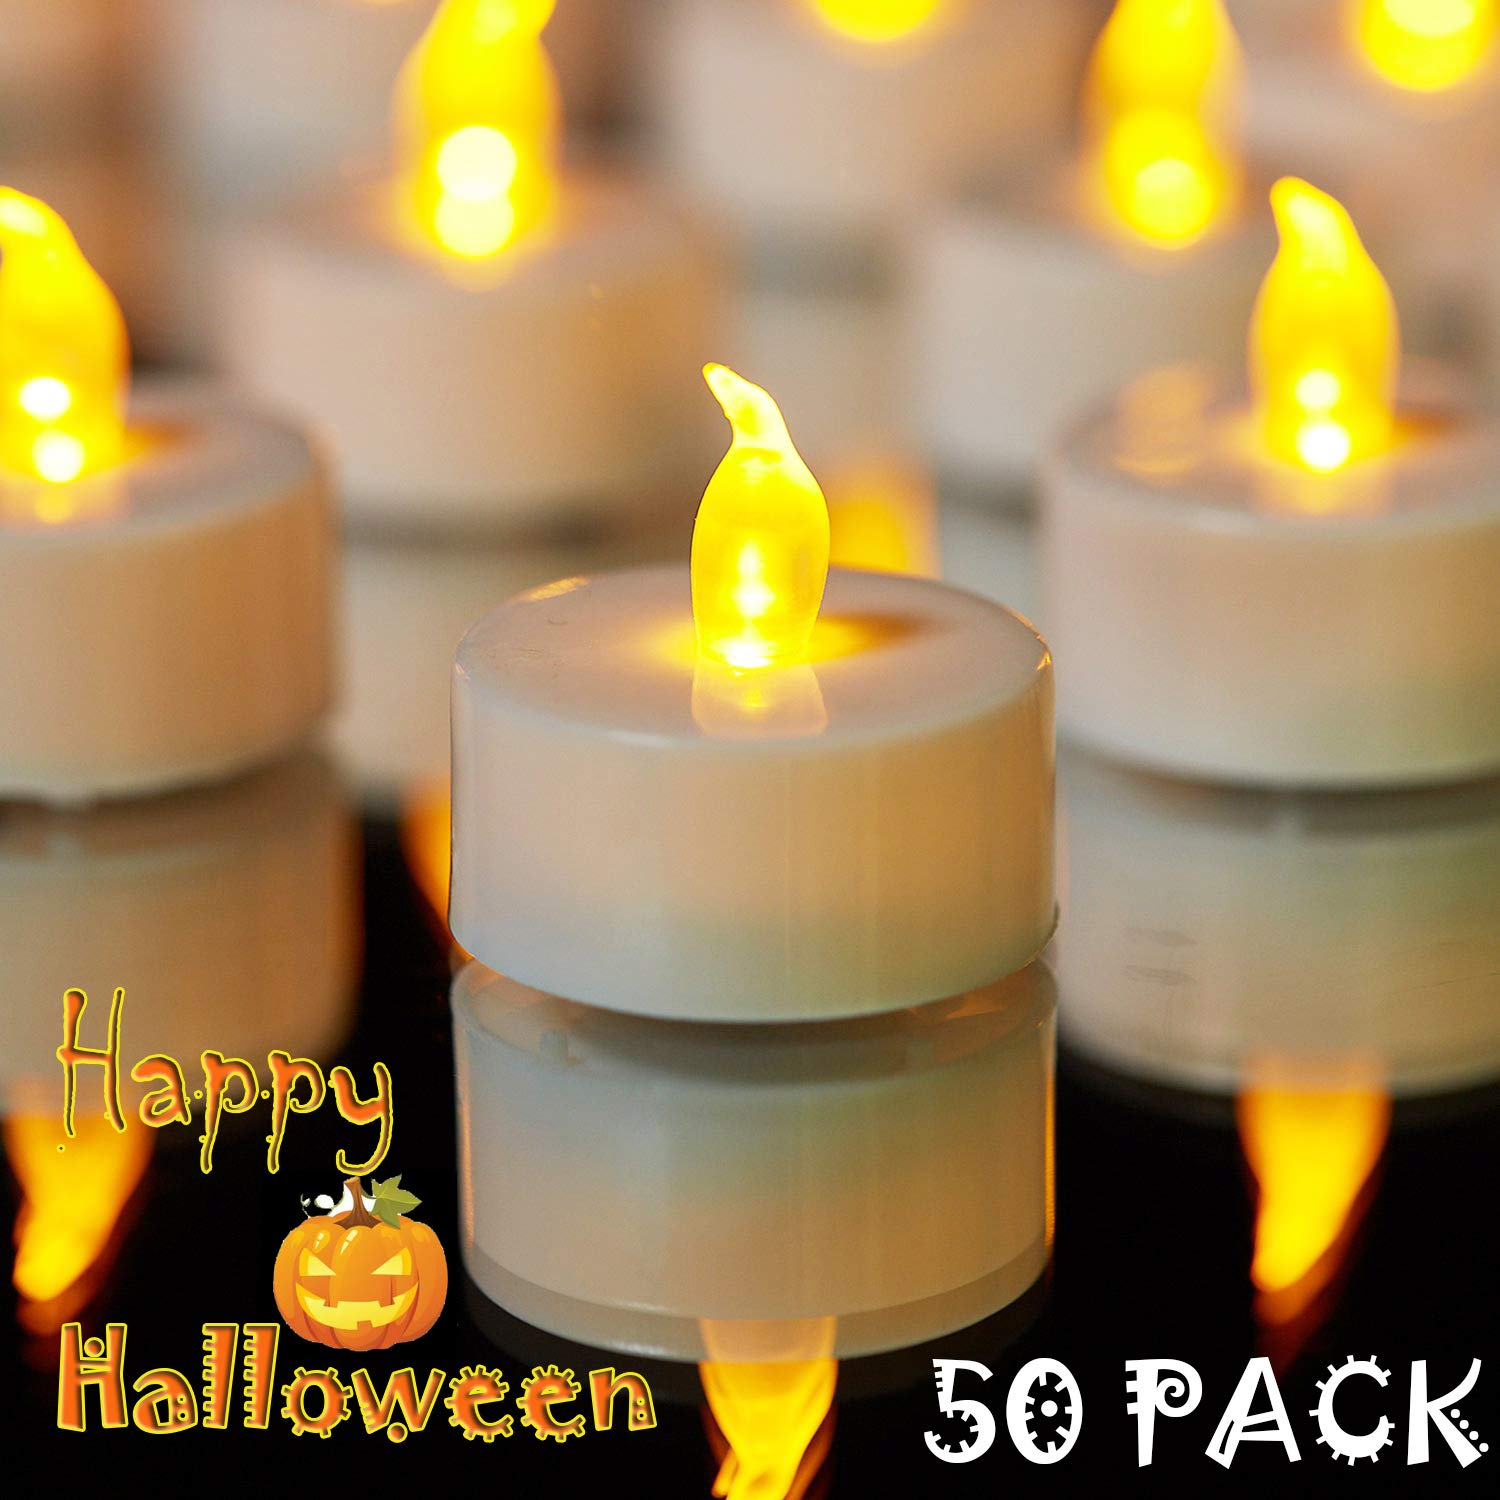 YIWER Tea Lights, LED Tea Light Candles 100 Hours Pack of 50 Realistic Flickering Bulb Battery Operated Tea Lights for Seasonal & Festival Celebration Electric Fake Candle in Warm Yellow by YIWER